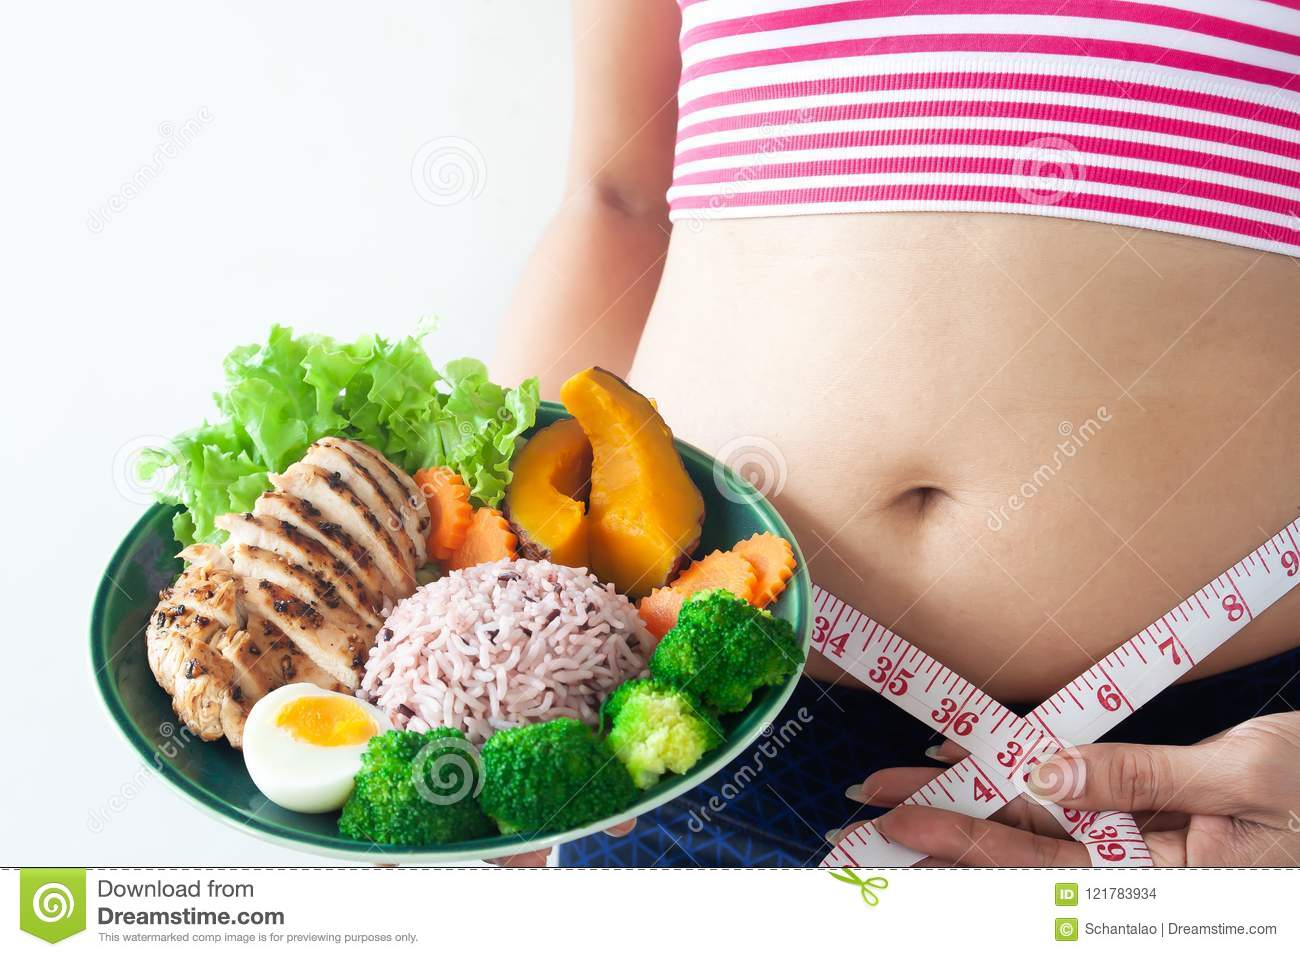 Metabolism Boosting Foods Weight Loss Diet Foods To Eat To Lose Weight